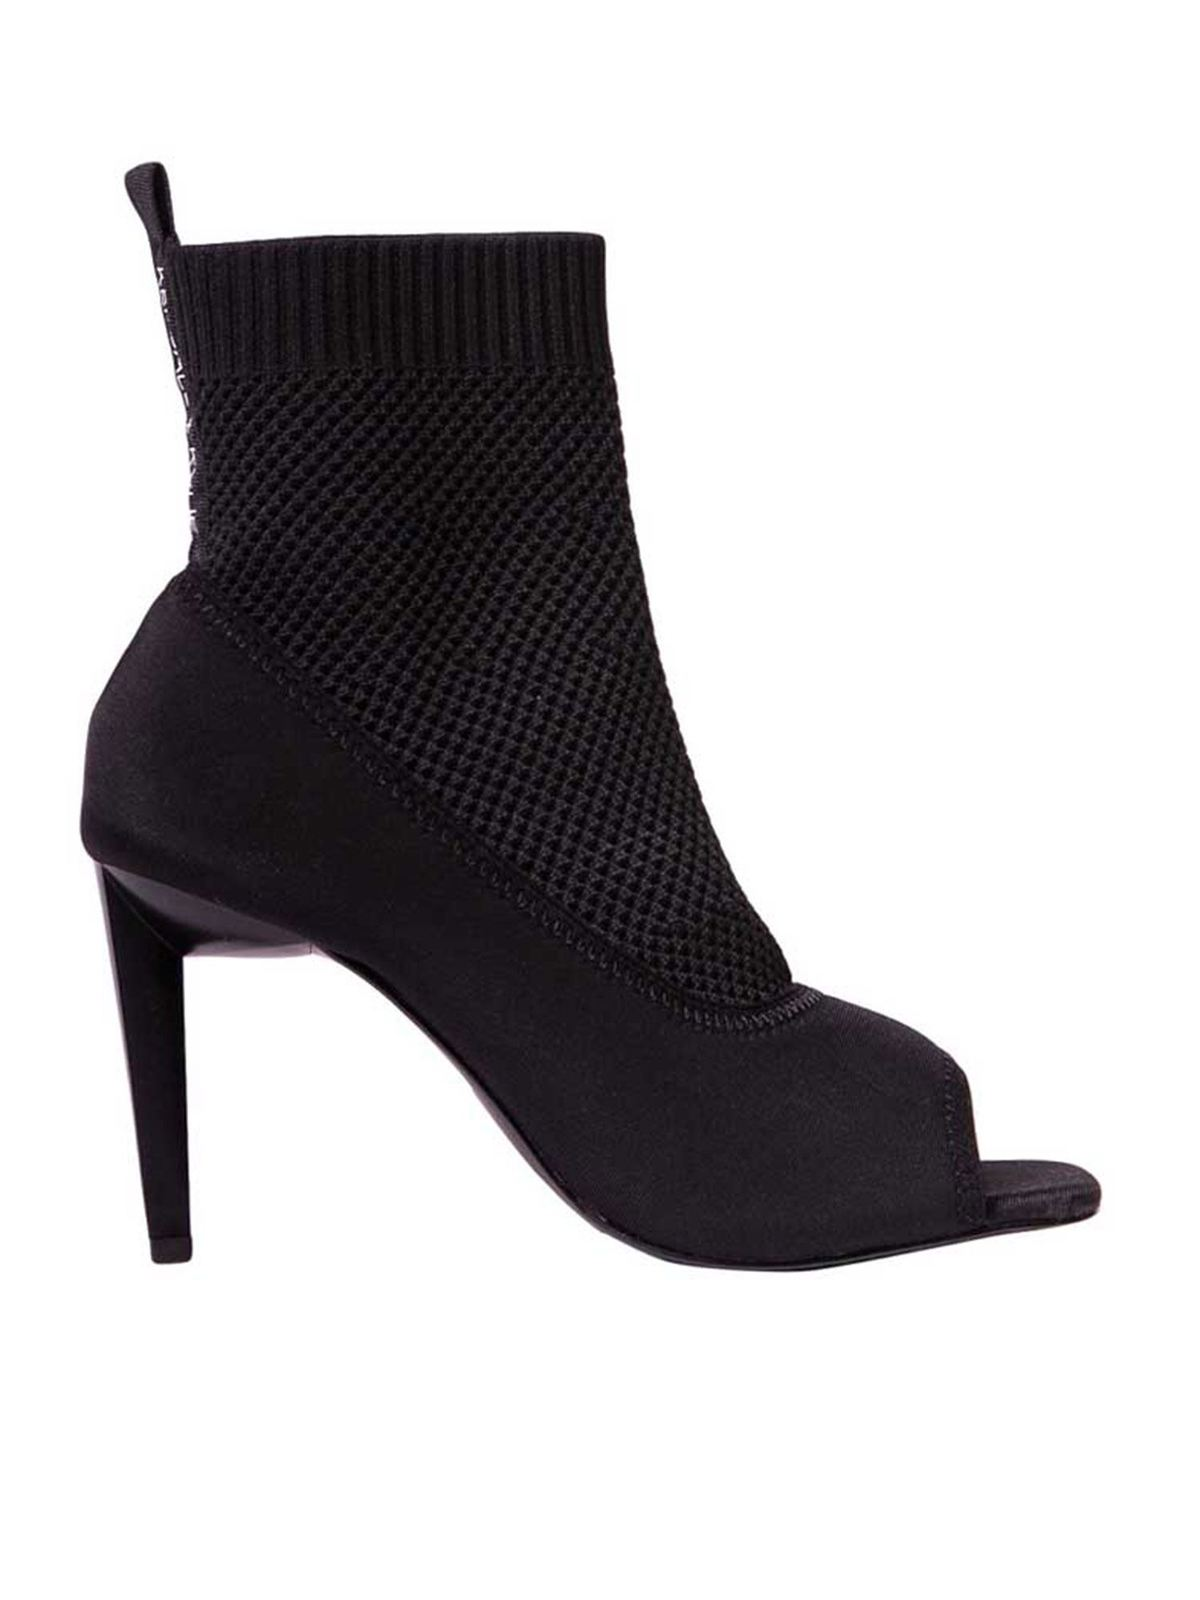 Kendall + Kylie ZIKO ANKLE PUMPS IN BLACK